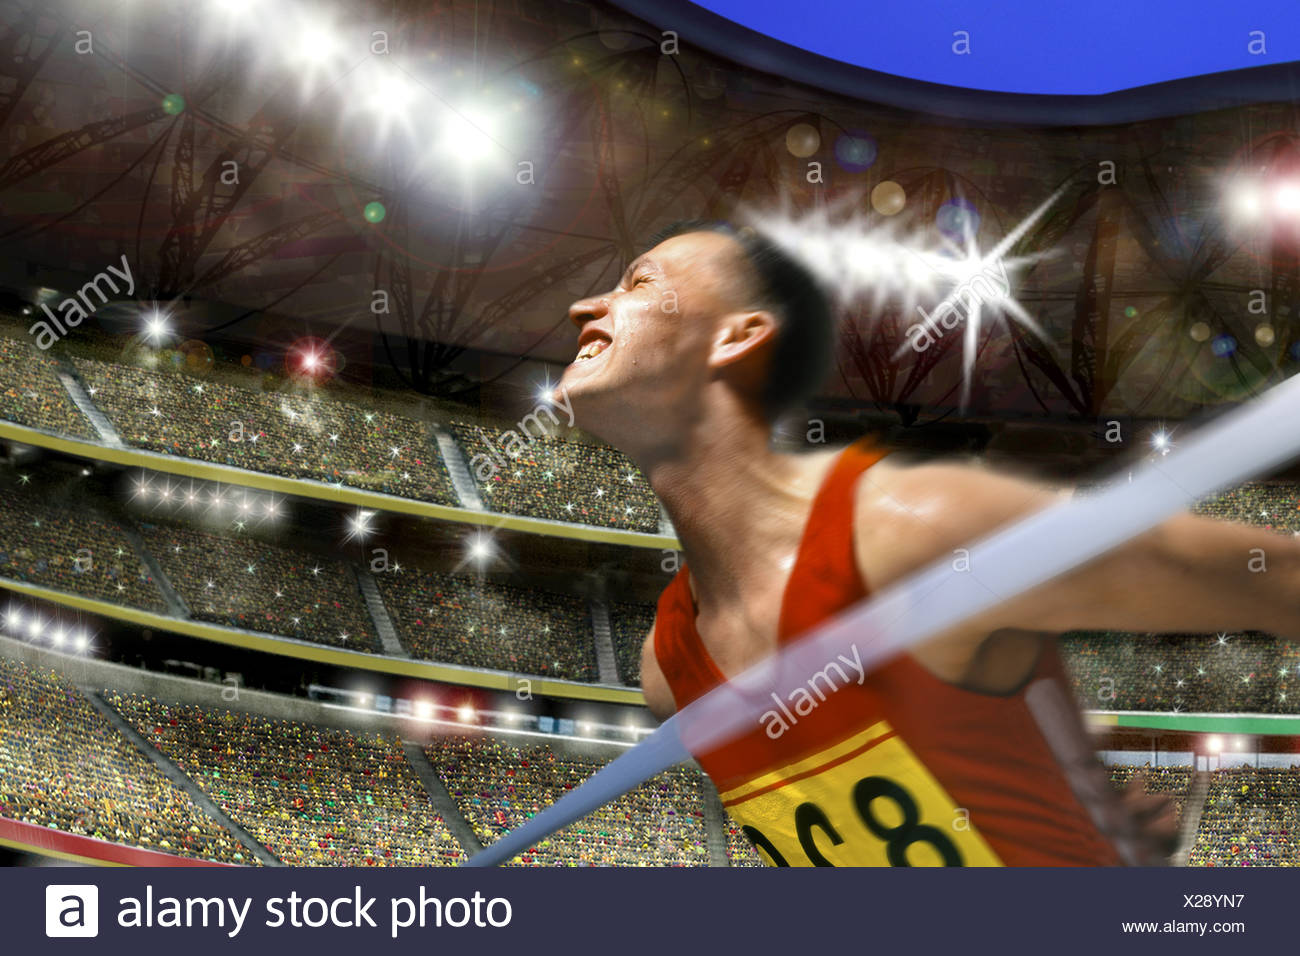 Runner, winner at the finish line just in front of the ribbon, stadium - Stock Image